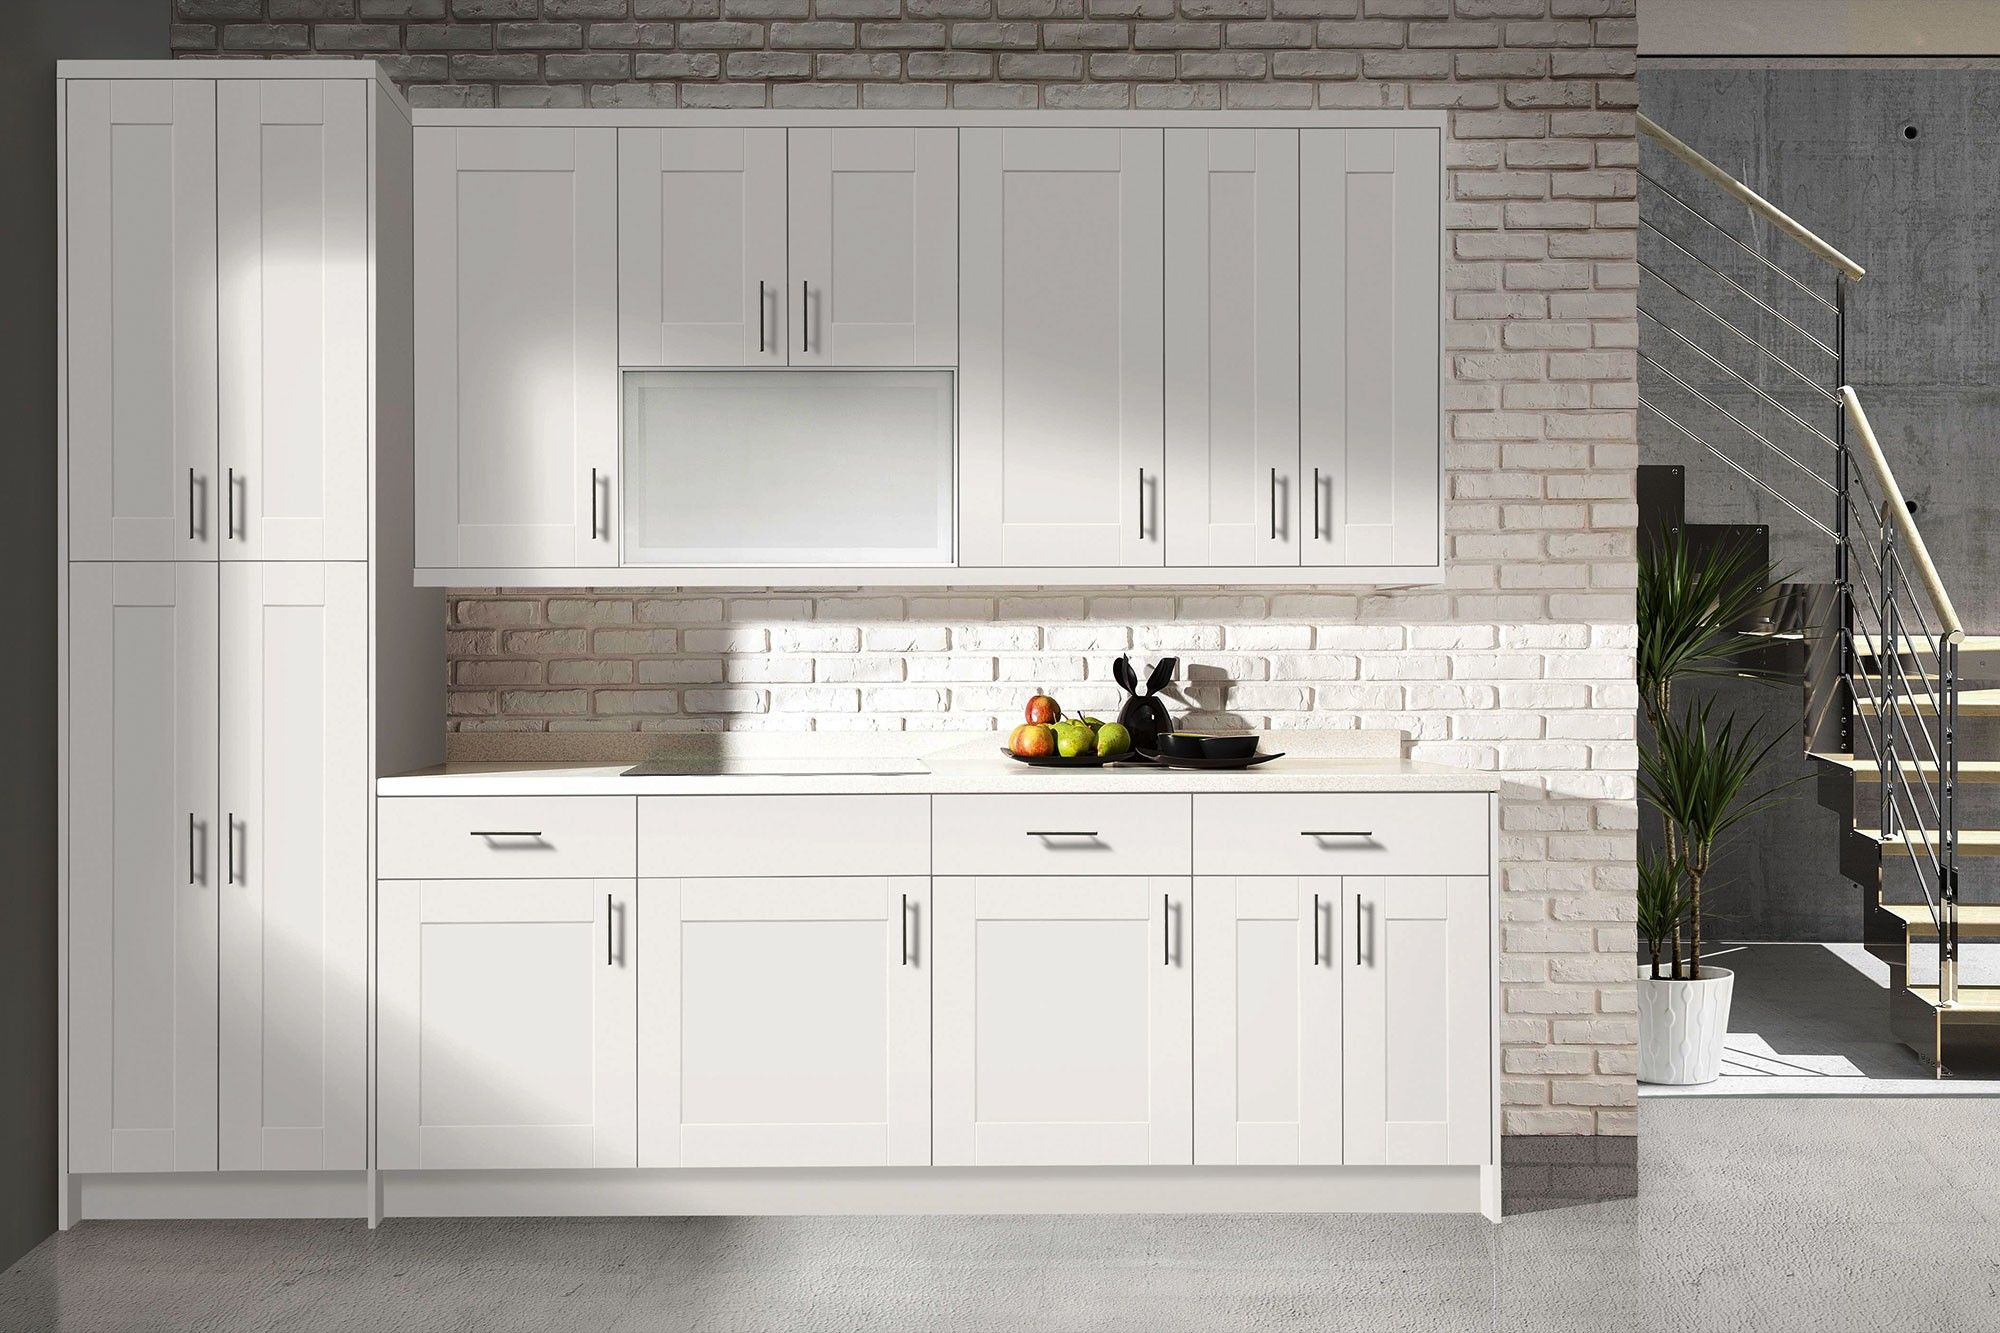 Bianca White Shaker Kitchen Cabinets In Stock Jpg 2 000 1 333 Pixels Shaker Cabinet Doors White Shaker Kitchen Cabinets Shaker Kitchen Cabinets